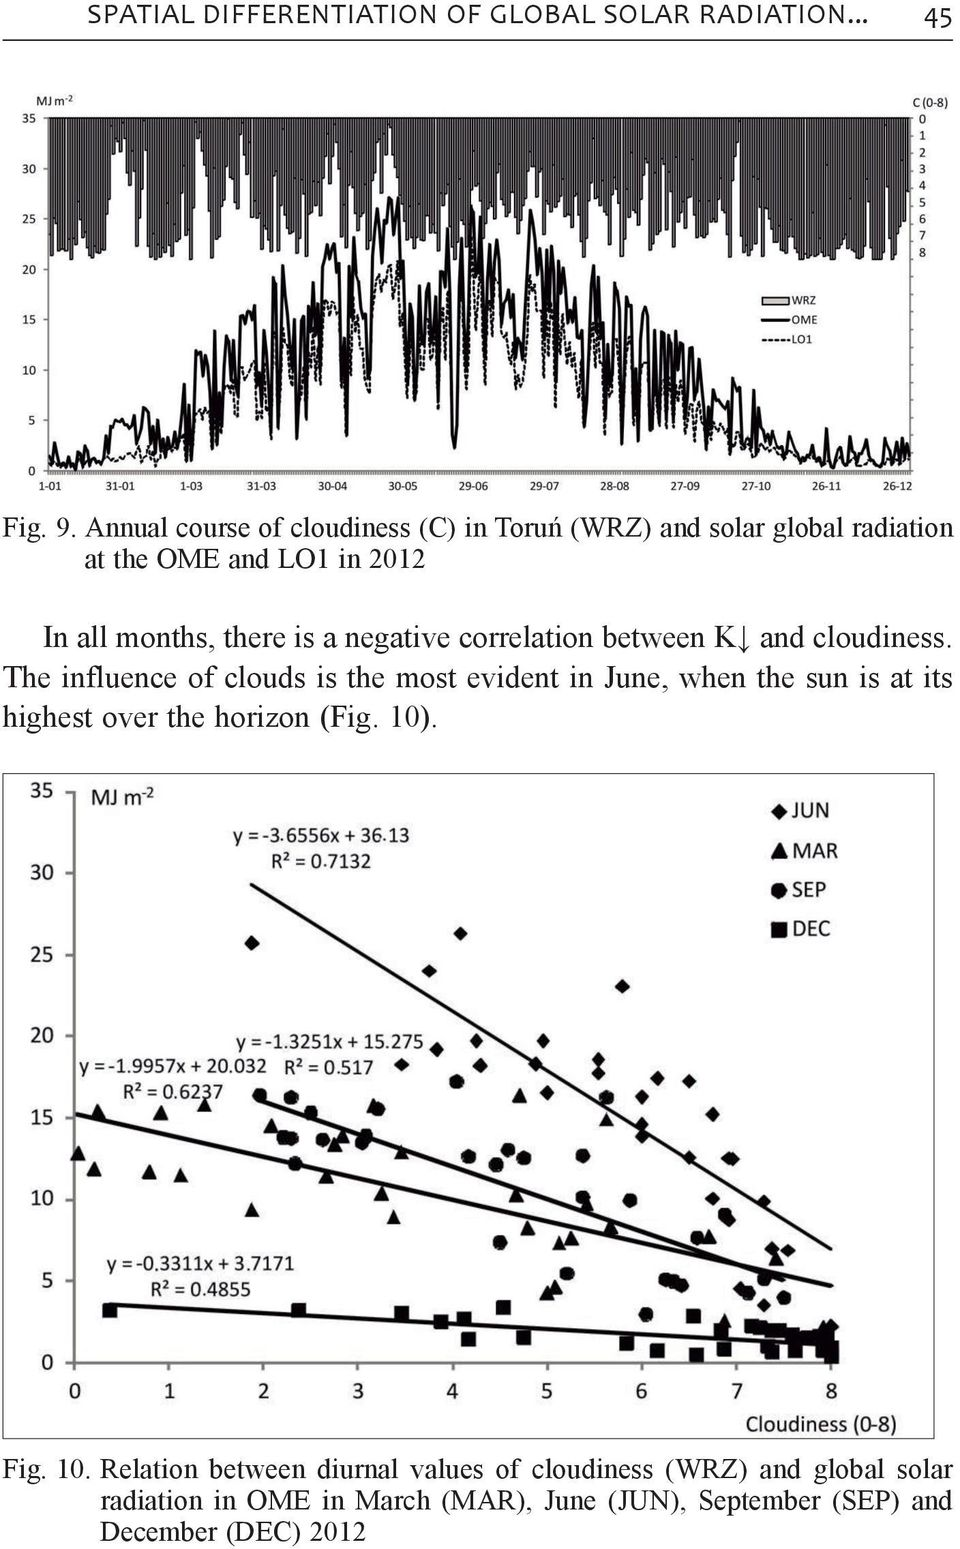 9. Annual of Annual cloudiness course course of cloudiness (C) of cloudiness (C) Toruń Toruń (WRZ) (C) in Toruń and solar (WRZ) global and radiation radiation solar at the global OME at the radiation